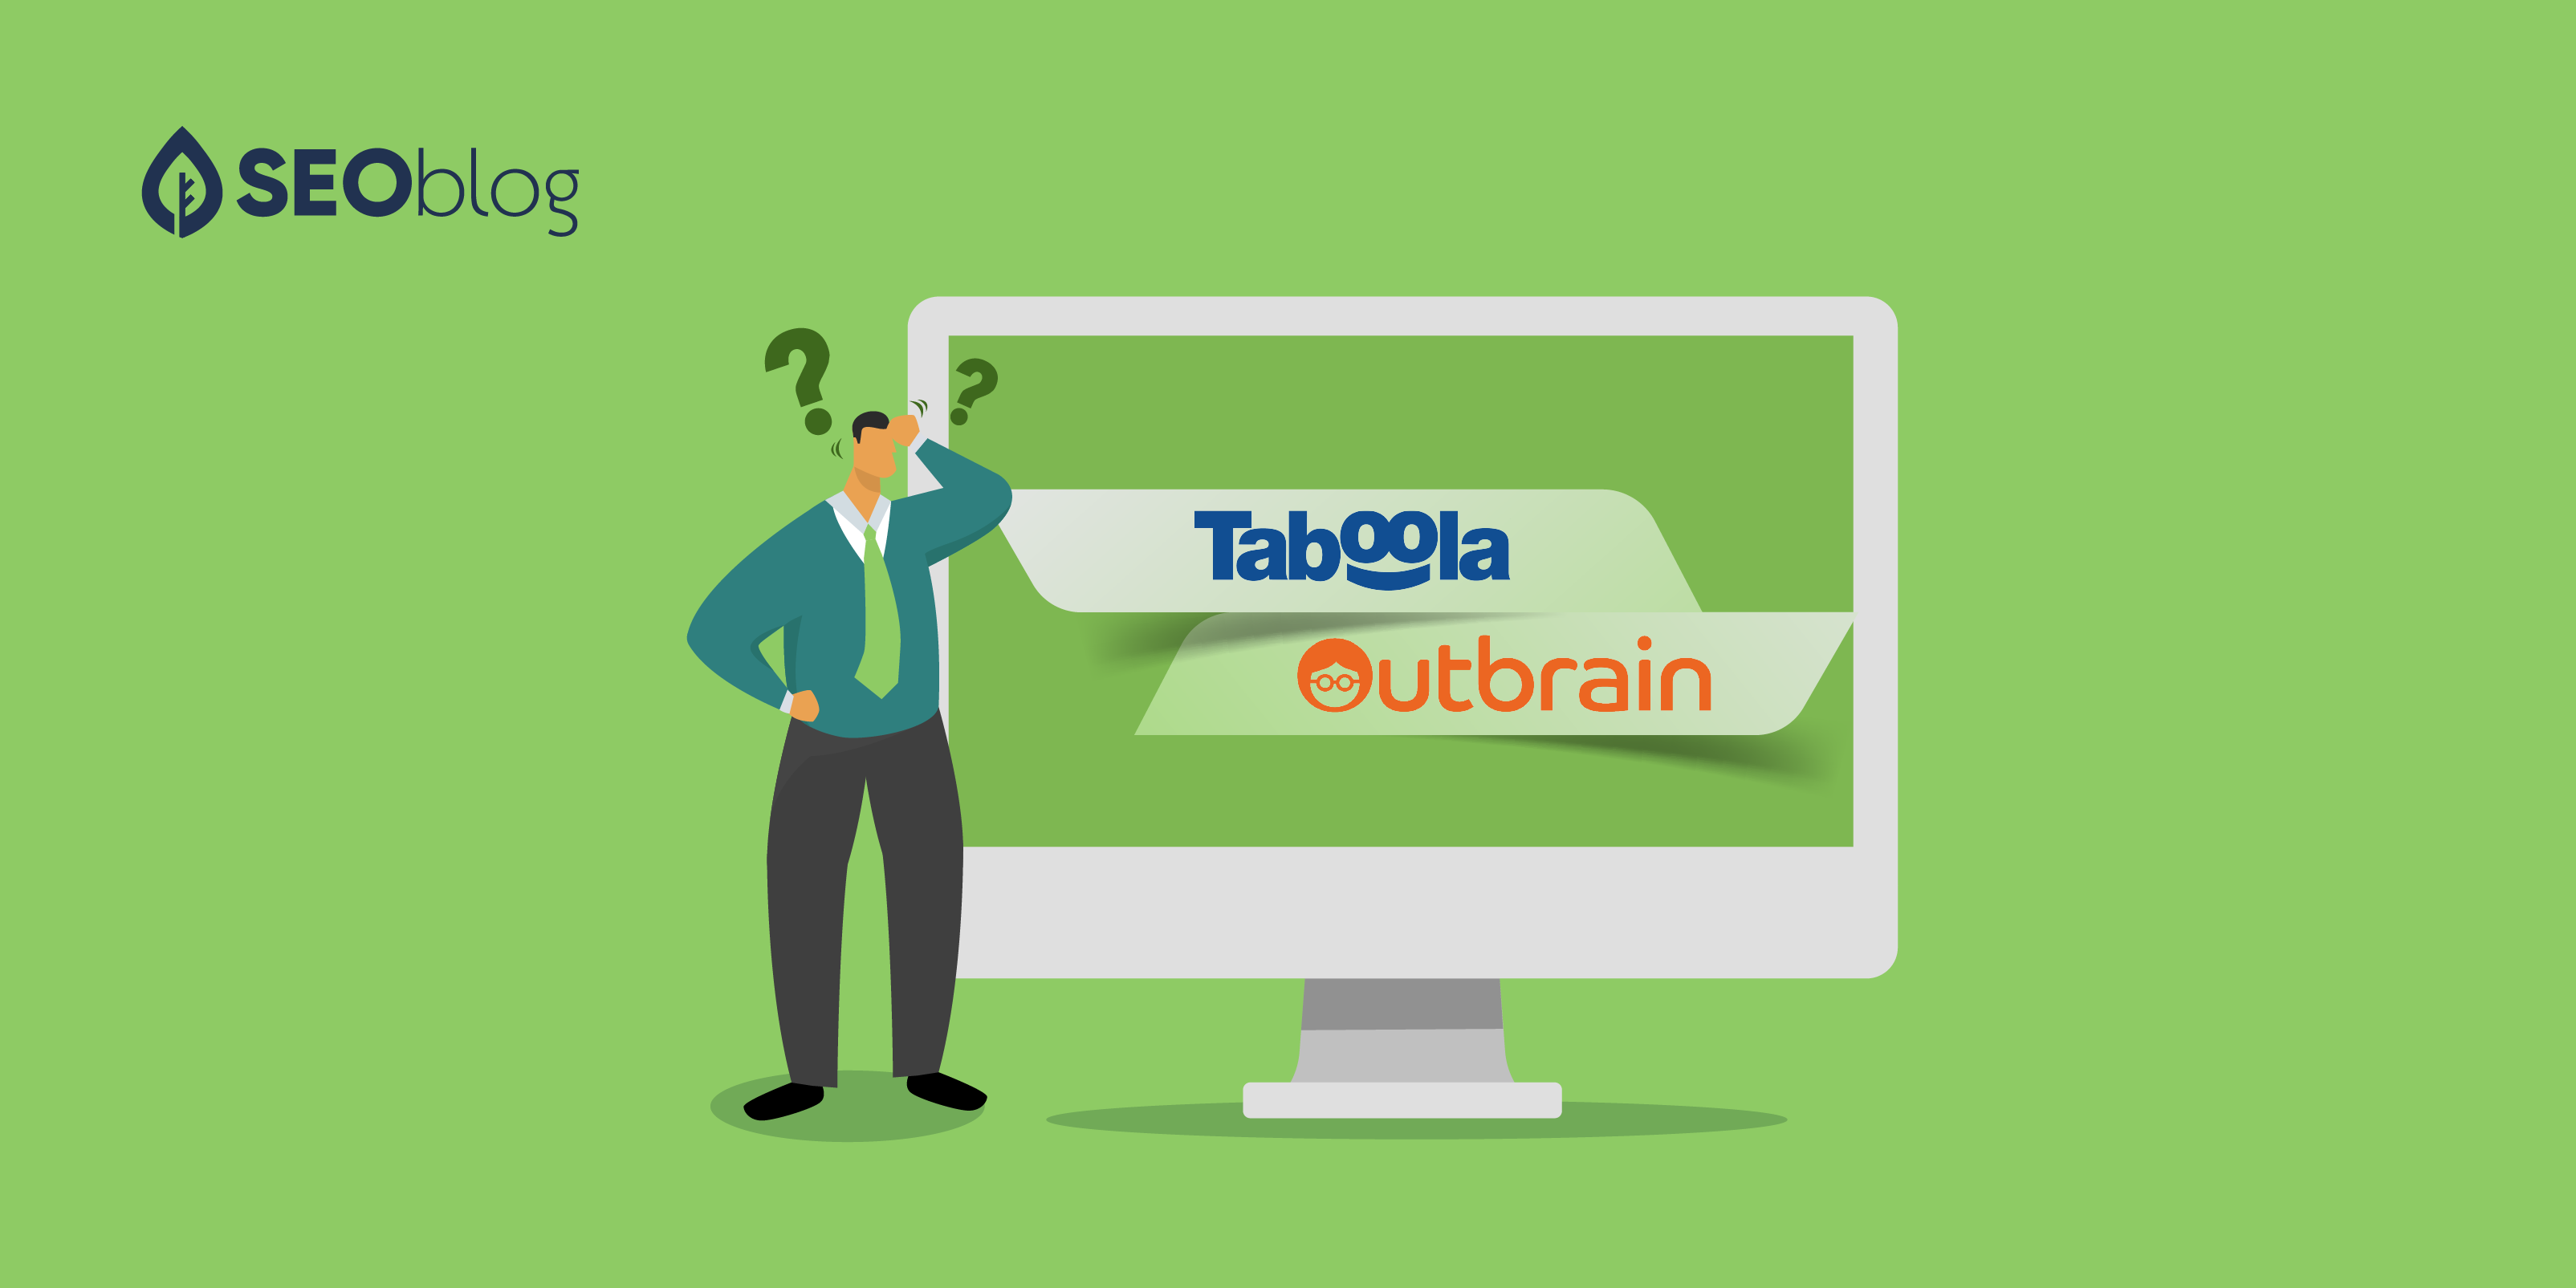 seoblog Are Ads Like Taboola and Outbrain Bad for SEO